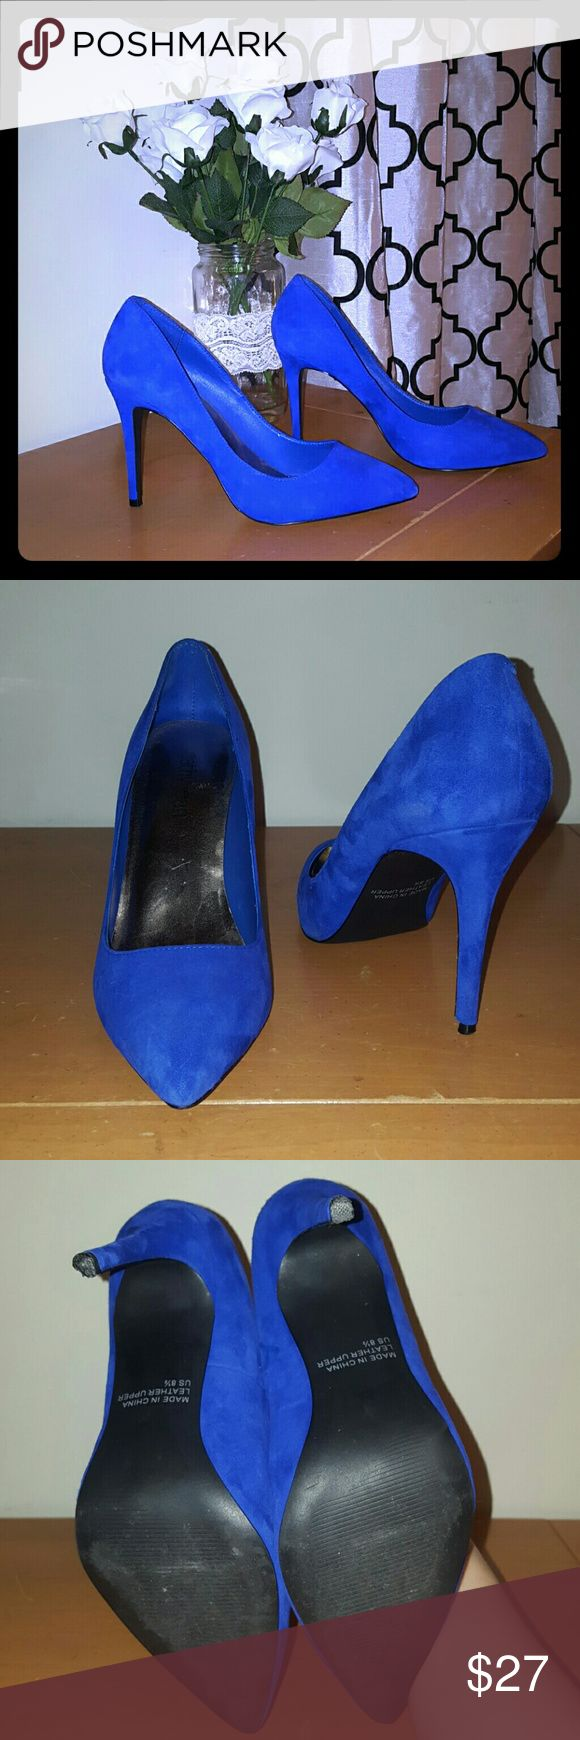 """Blue suede Pumps 4"""" single sole blue sude pumps. Heel tap on left shoe partially broken. Other than that in great condition. Genuine leather upper.  Fit true to size. Cathy Jean Shoes Heels"""